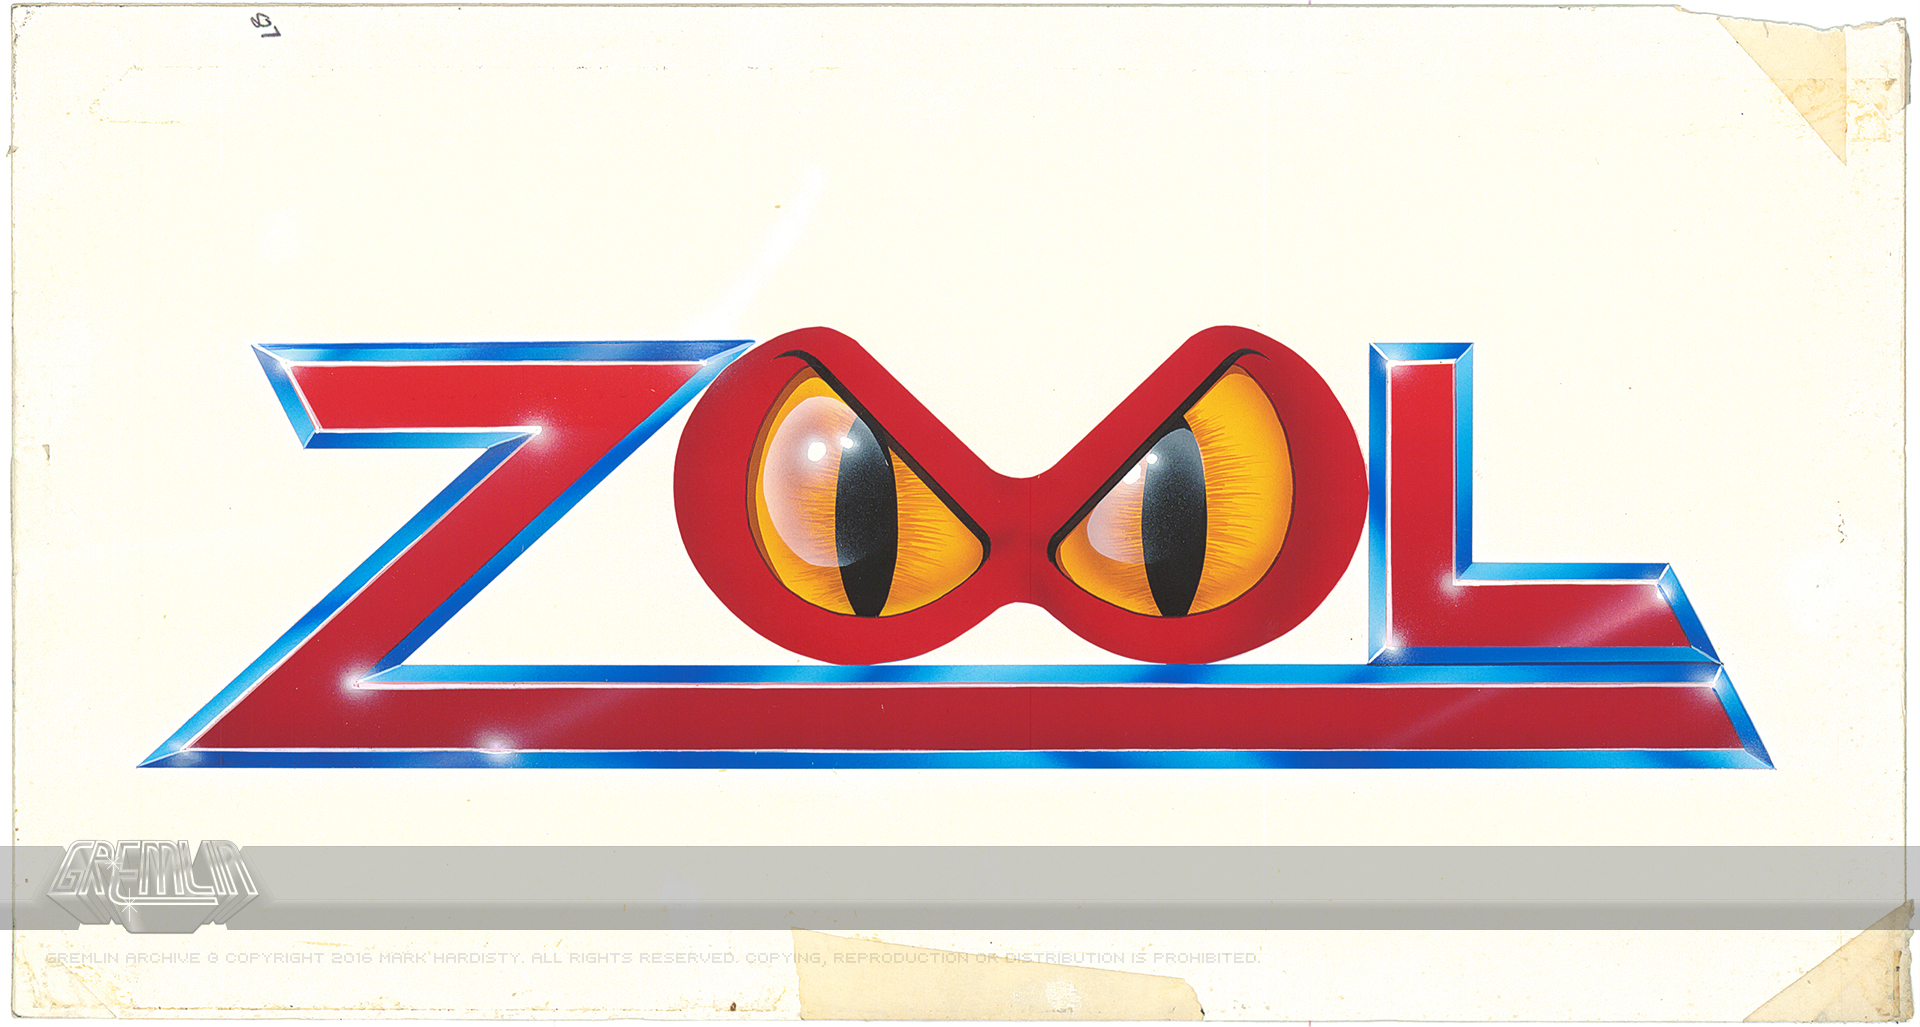 Zool Logo Artwork